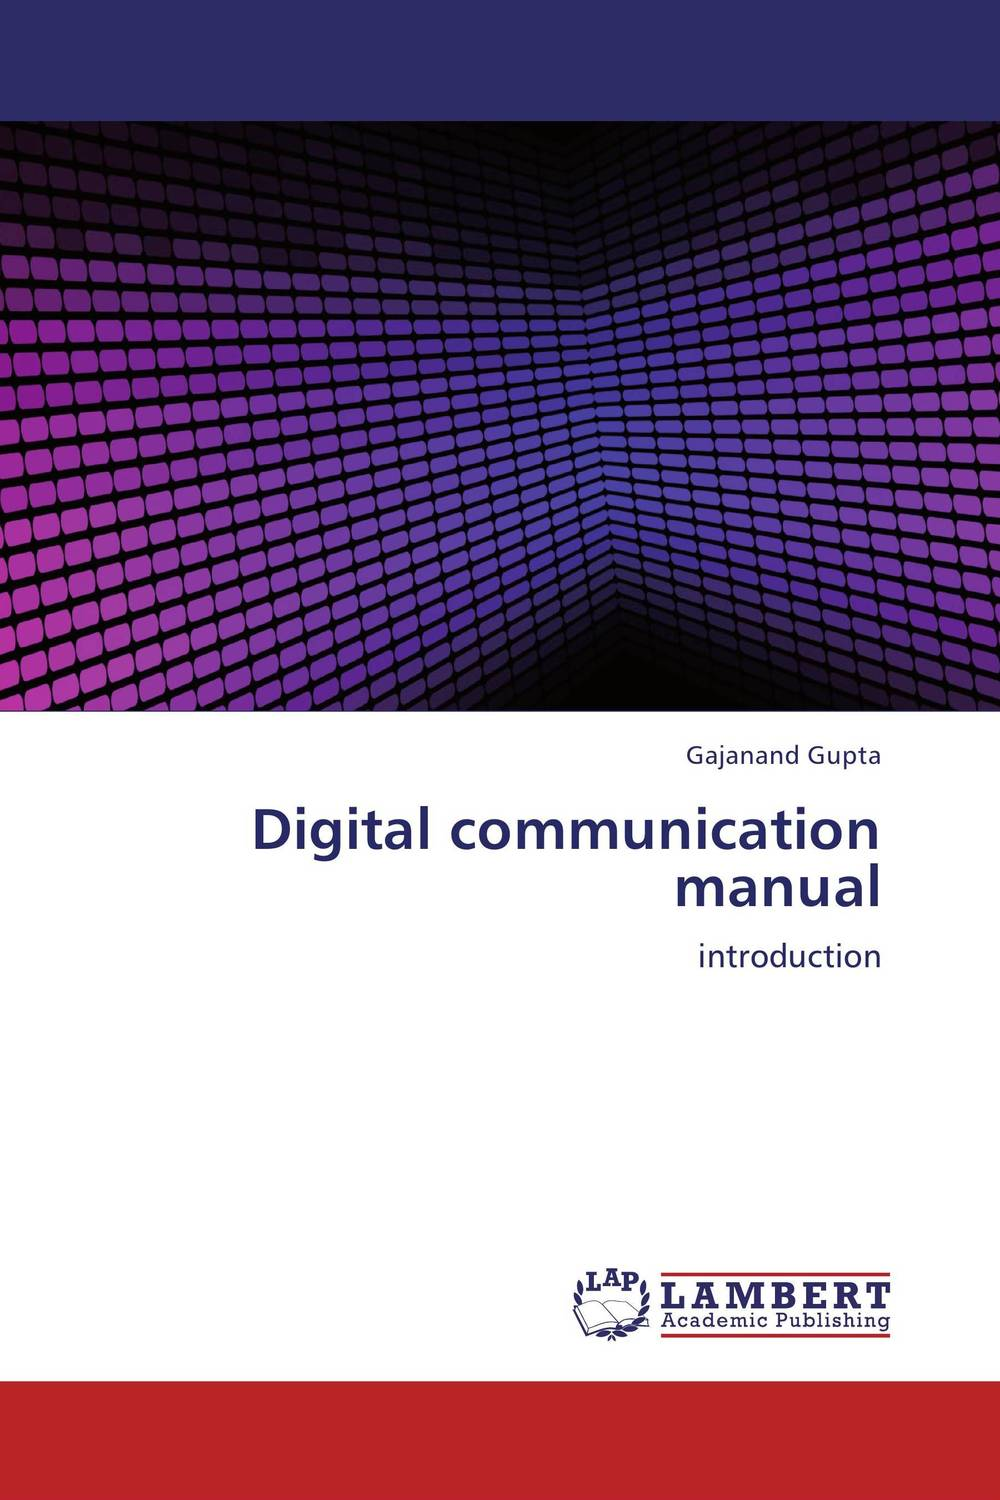 Digital communication manual маркер флуоресцентный centropen 8722 1о оранжевый 8722 1о